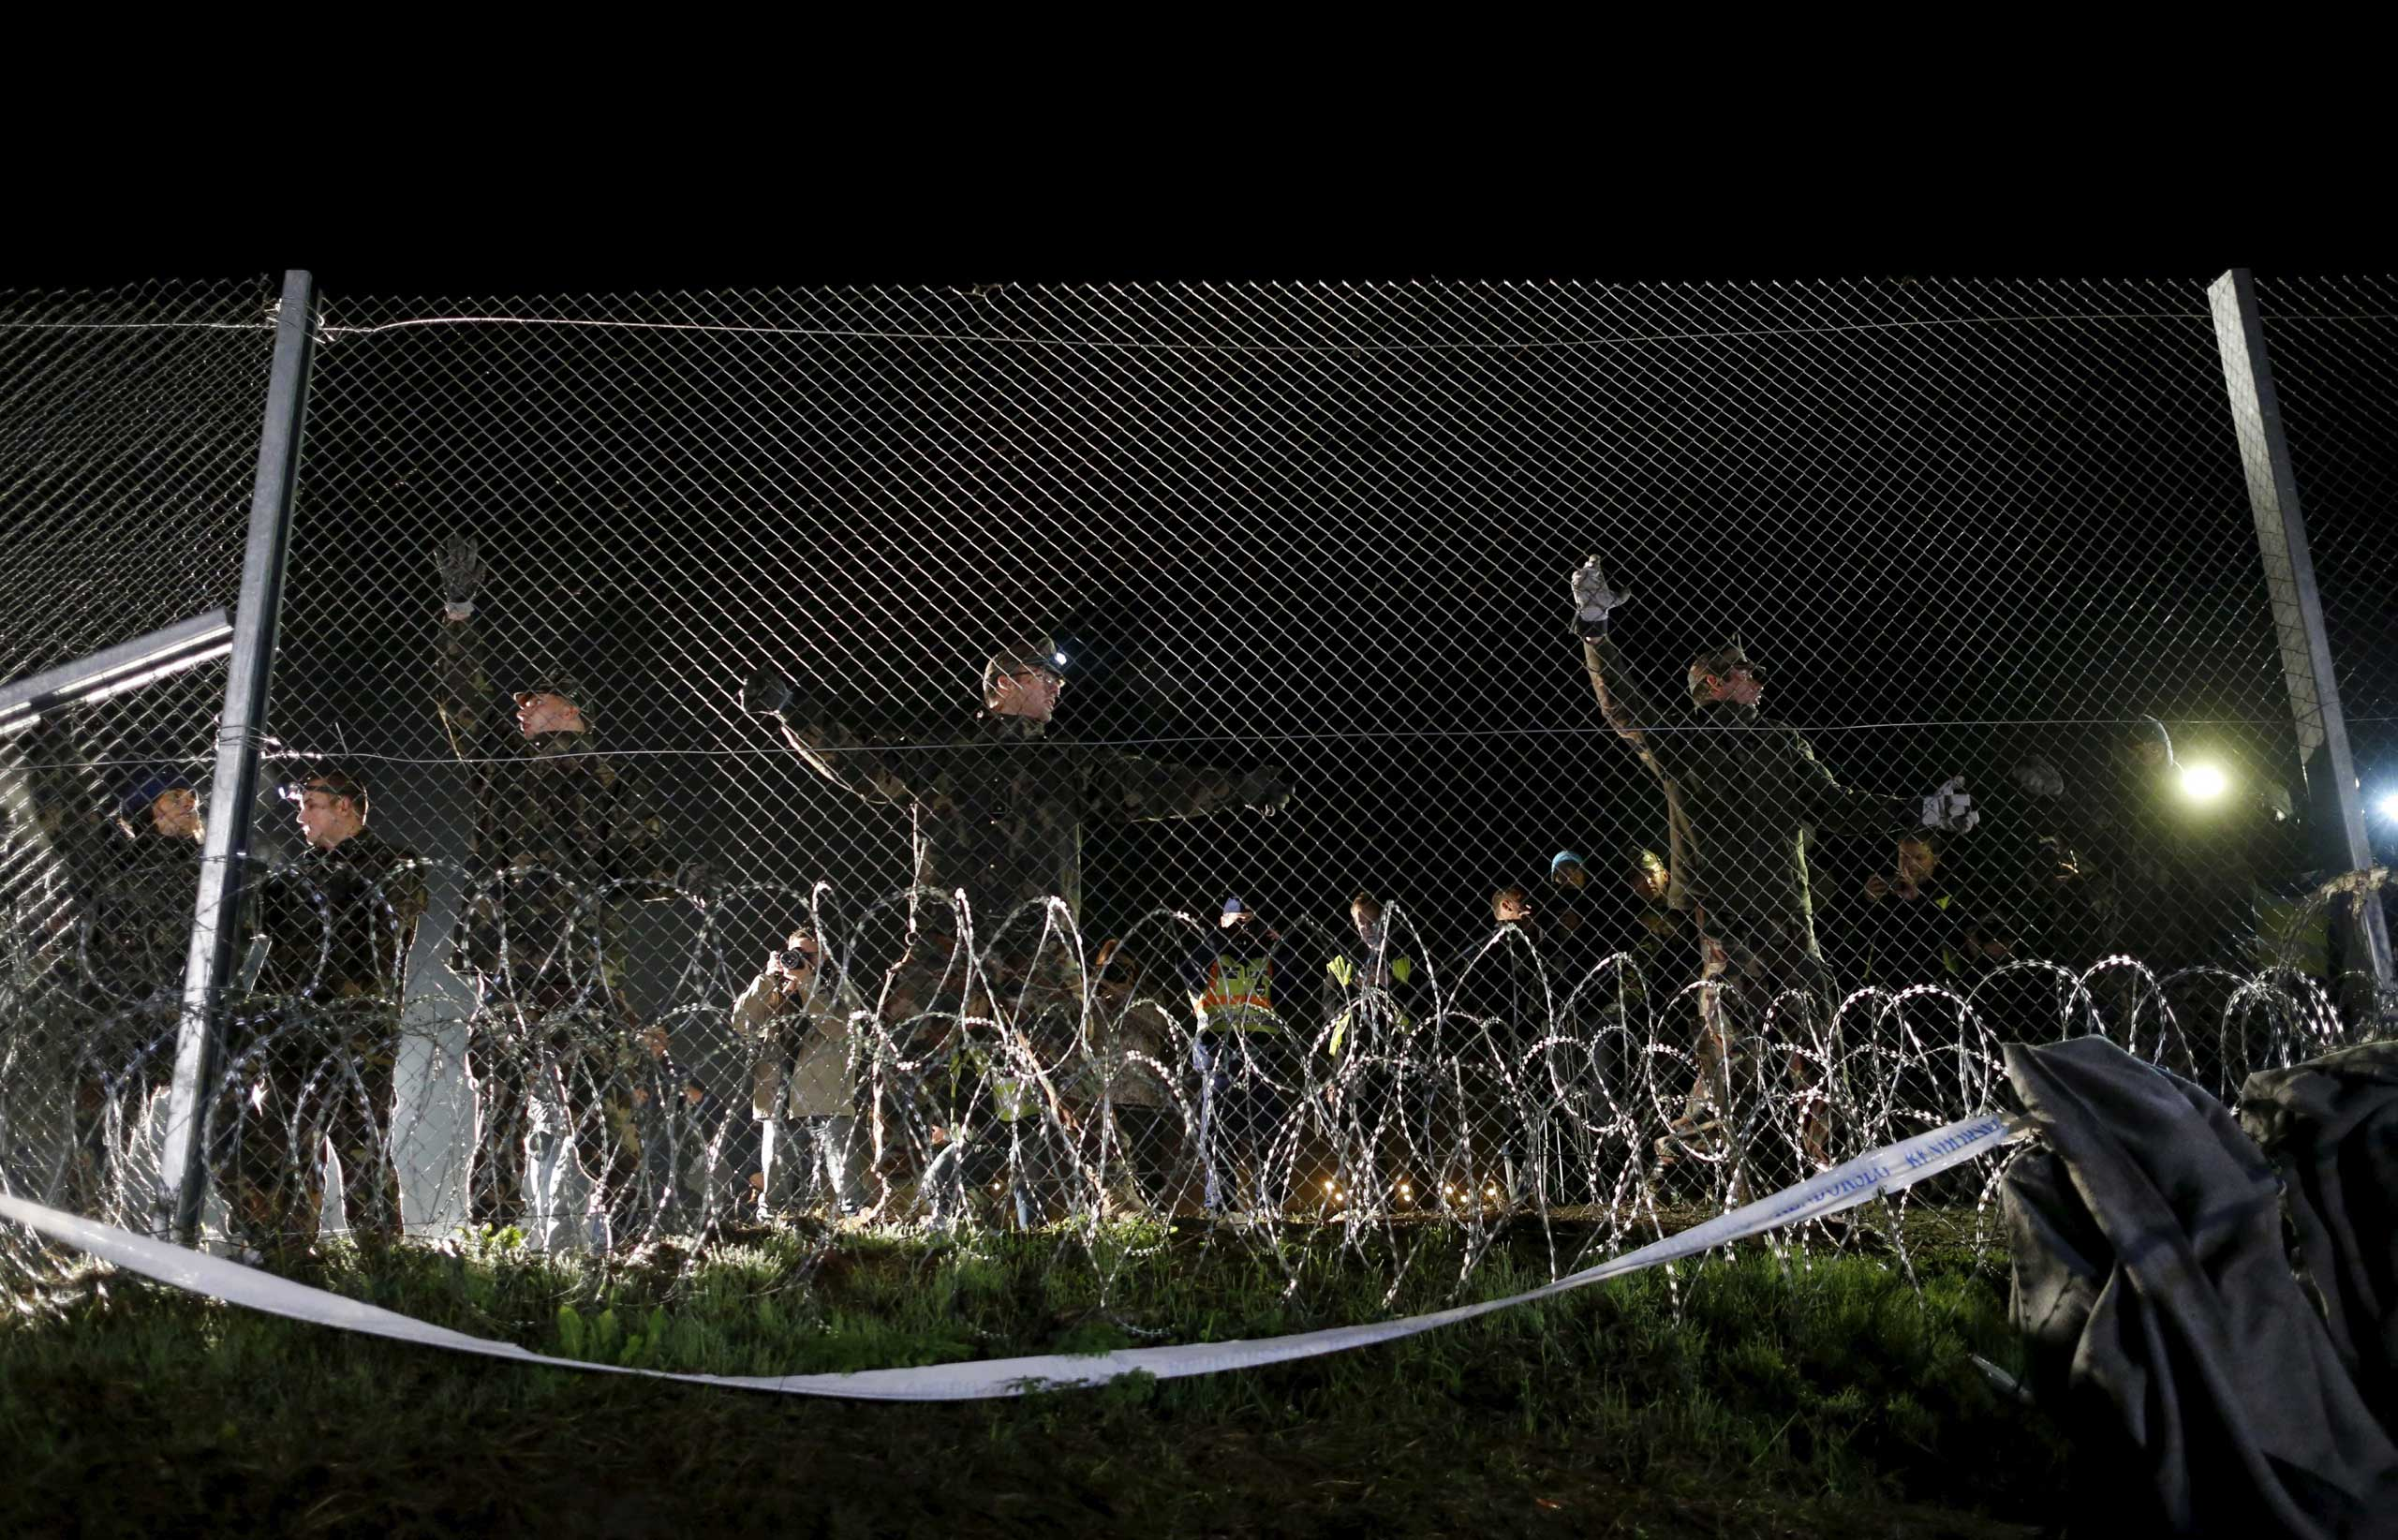 Hungarian soldiers close a border with Croatia near the village of Botovo, Croatia, on Oct. 17, 2015.